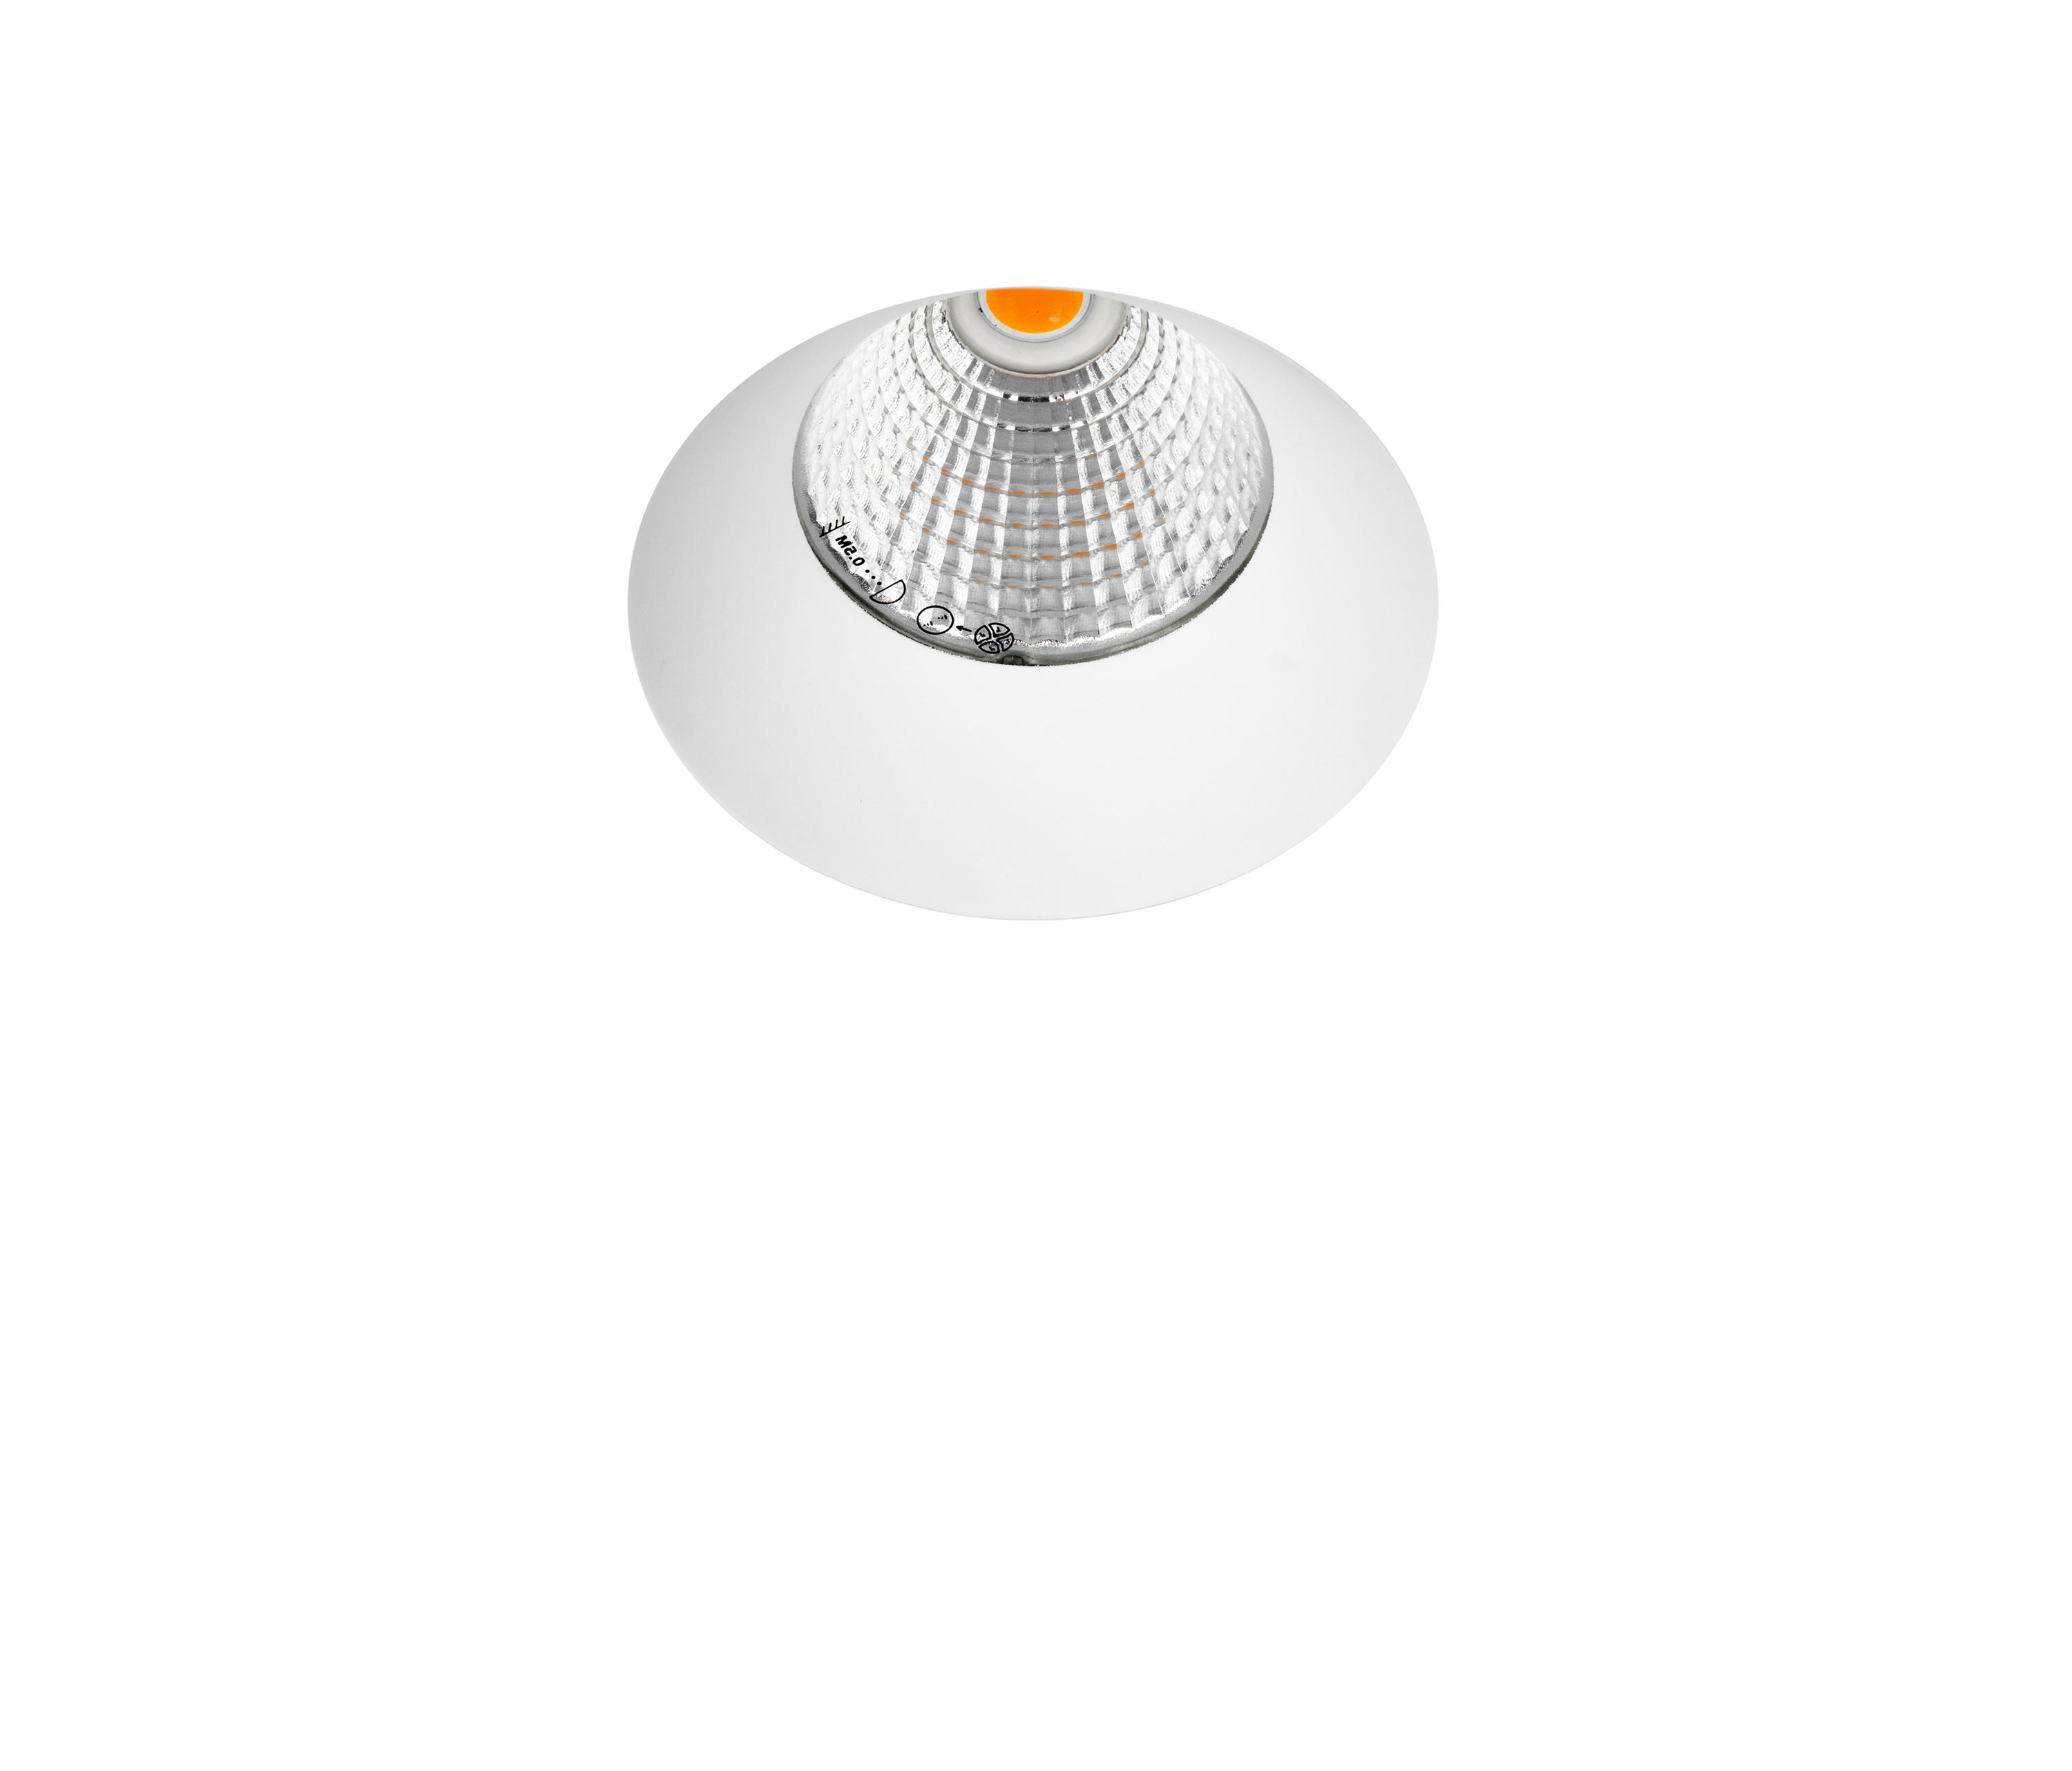 Cob Led Verlichting Borderless 1x Cob Led Recessed Ceiling Lights From Orbit